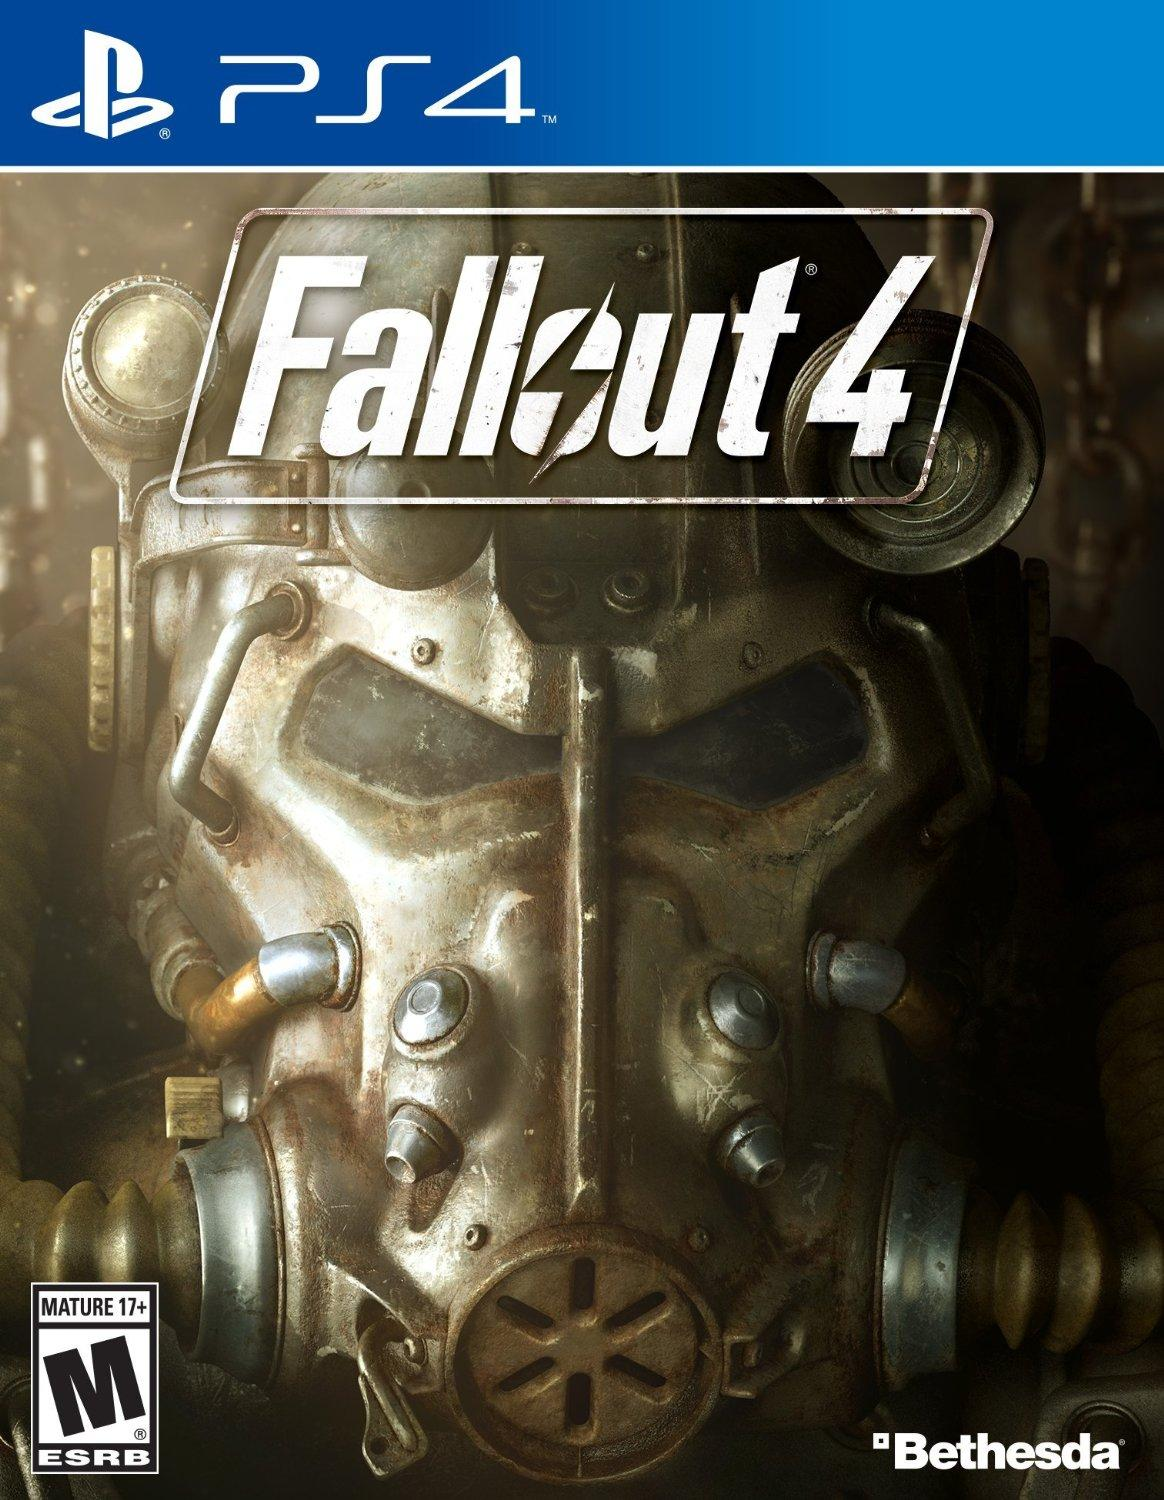 Fallout 4 - PlayStation 4/Xbox One